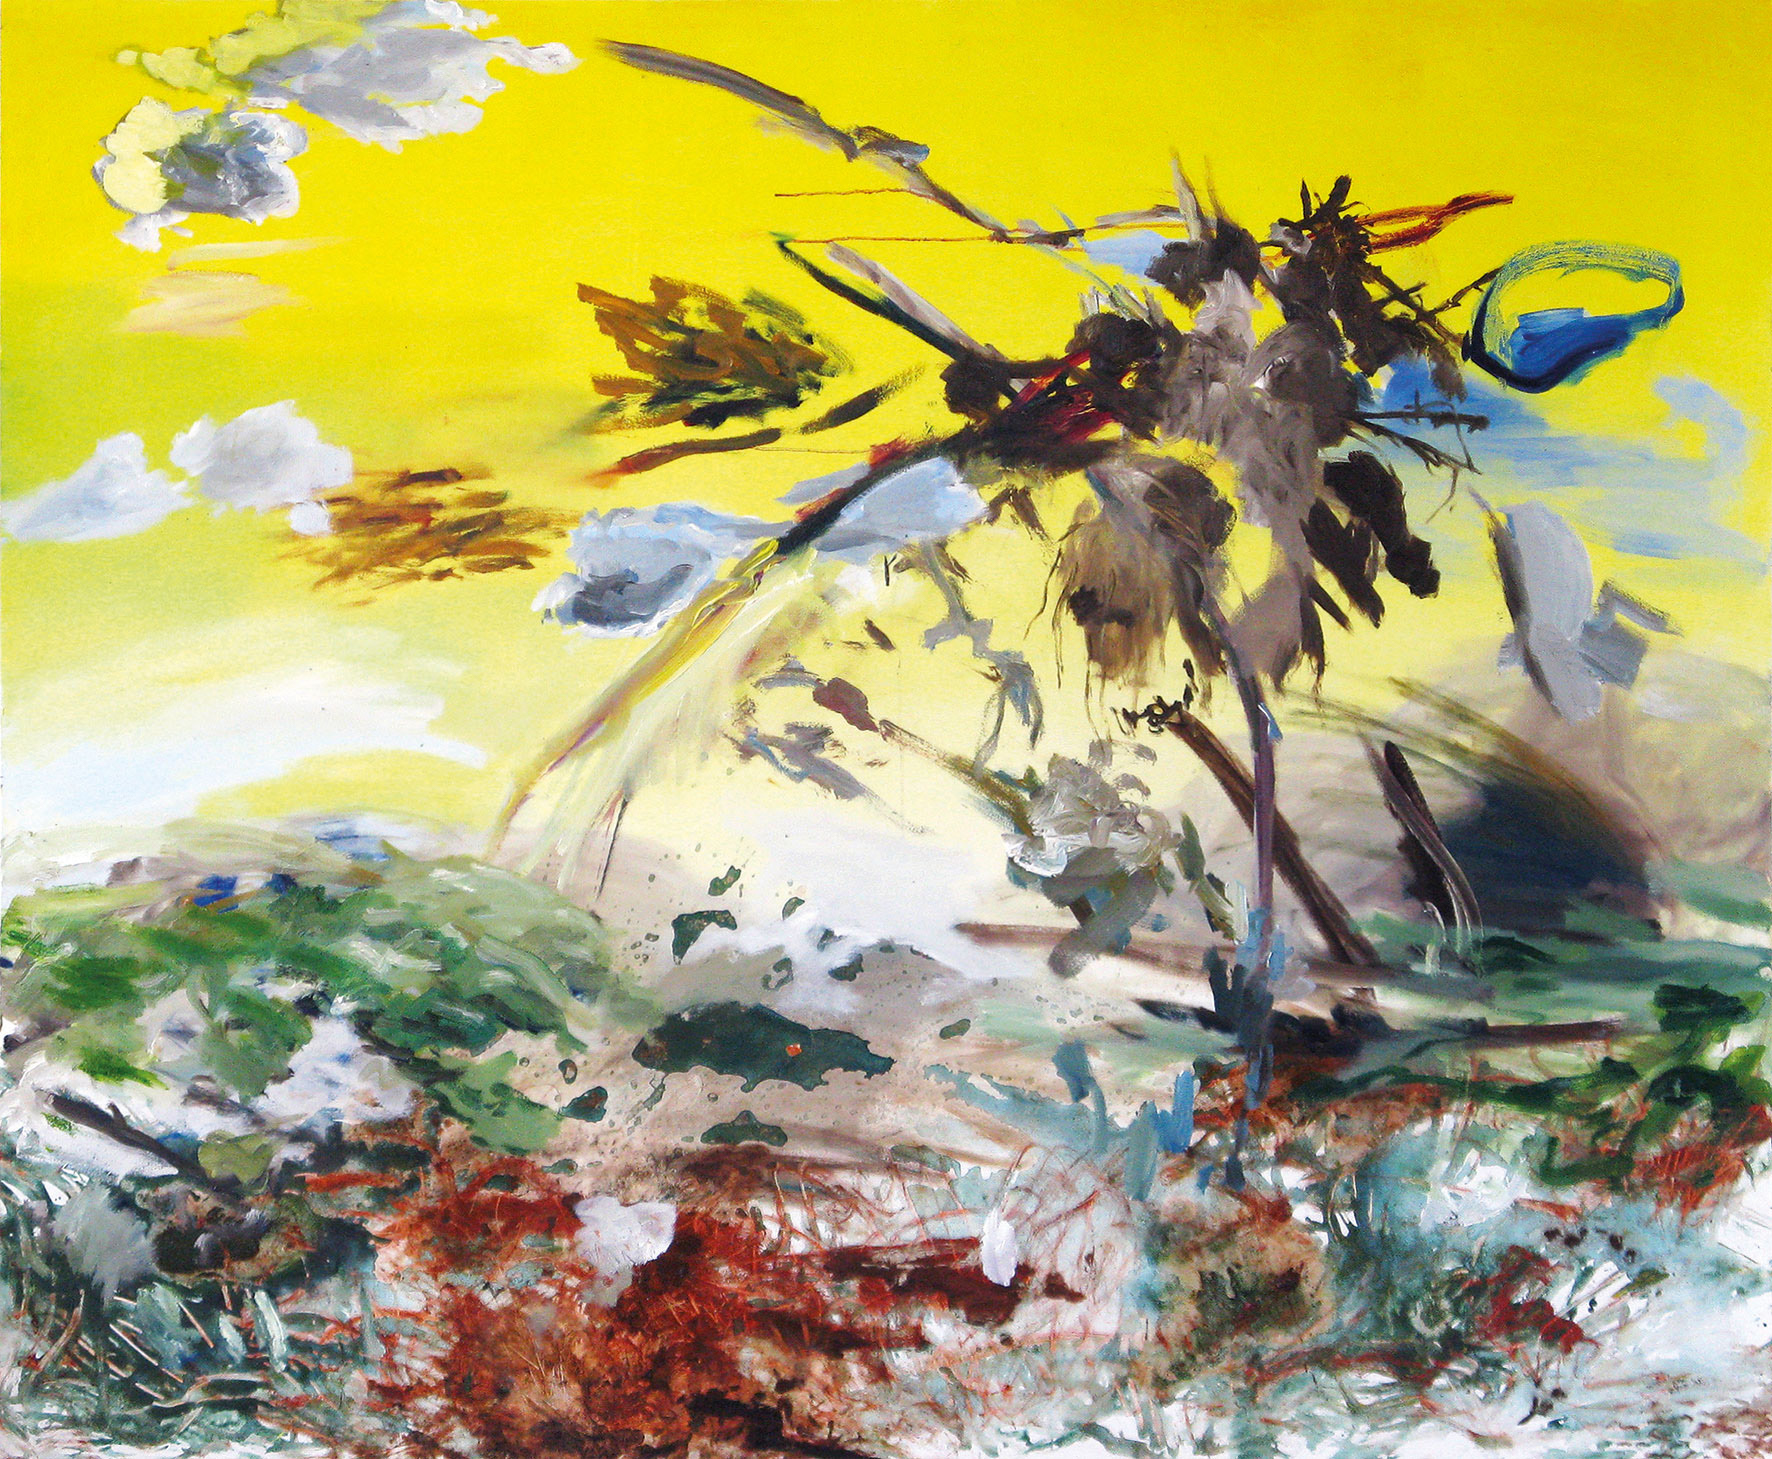 Suzanna Treumann - Urknall, Big Bang or the beginning of a painted world, acrylic und oil on canvas, 150 x 180 cm, 2008